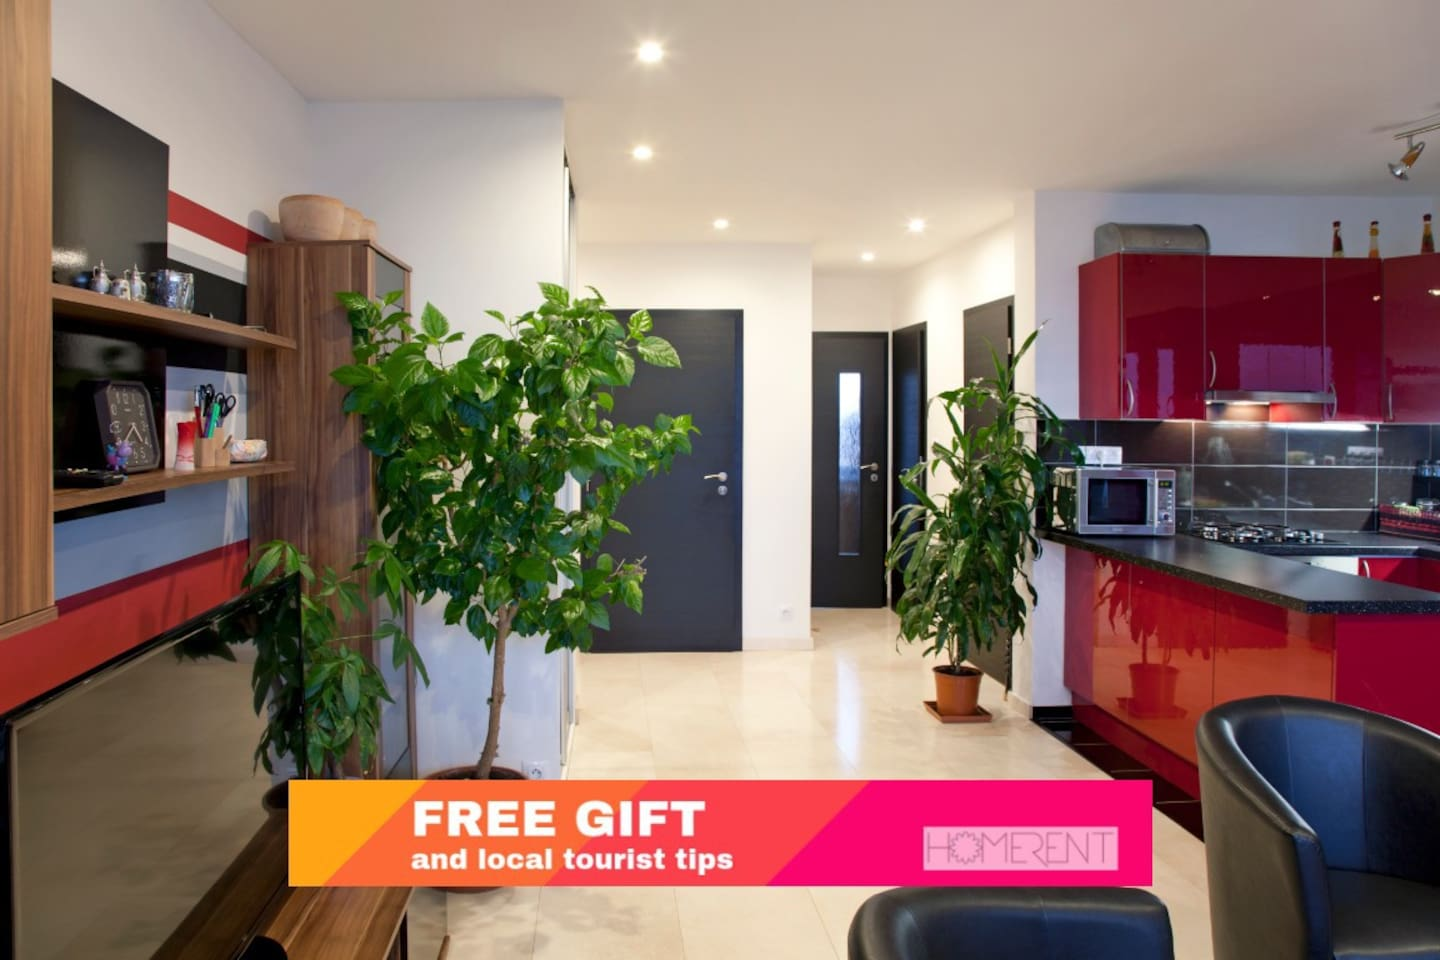 MODERN and SPACIOUS apartment with a charming red kitchen and enough space for 8 people!